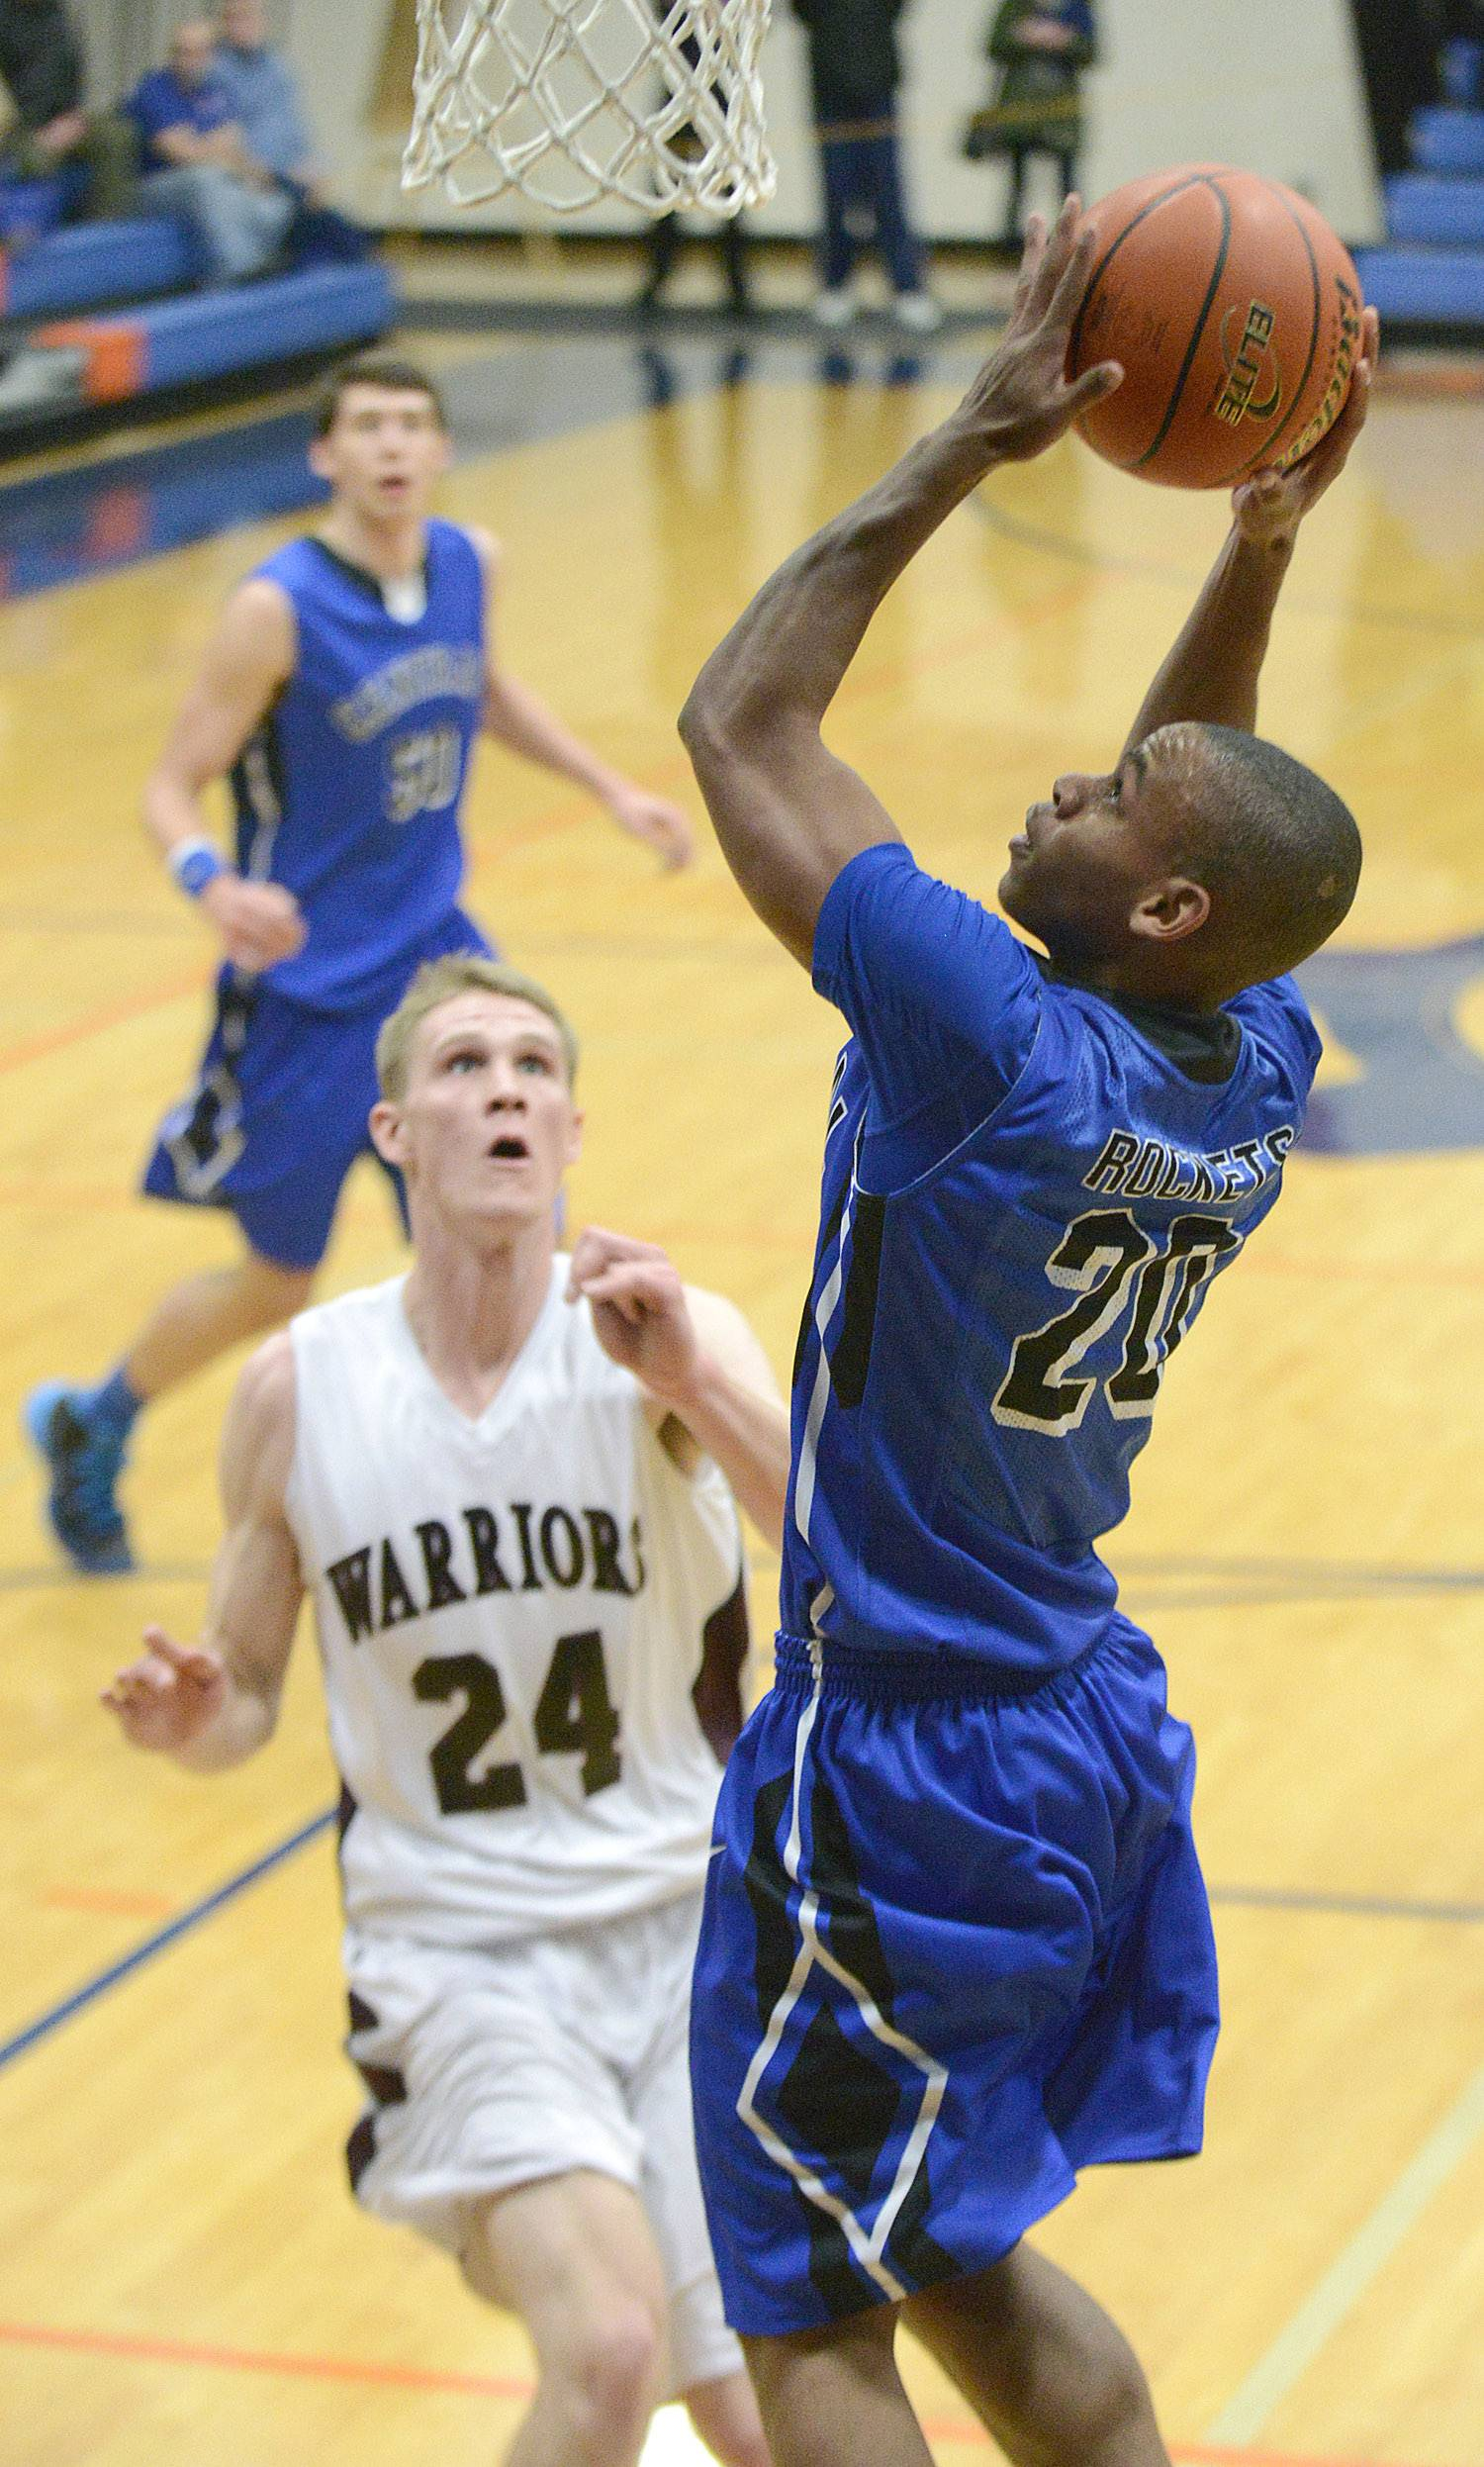 Burlington Central's Reed Hunnicutt shoots over Wheaton Academy's Gordon Behr in the first quarter.